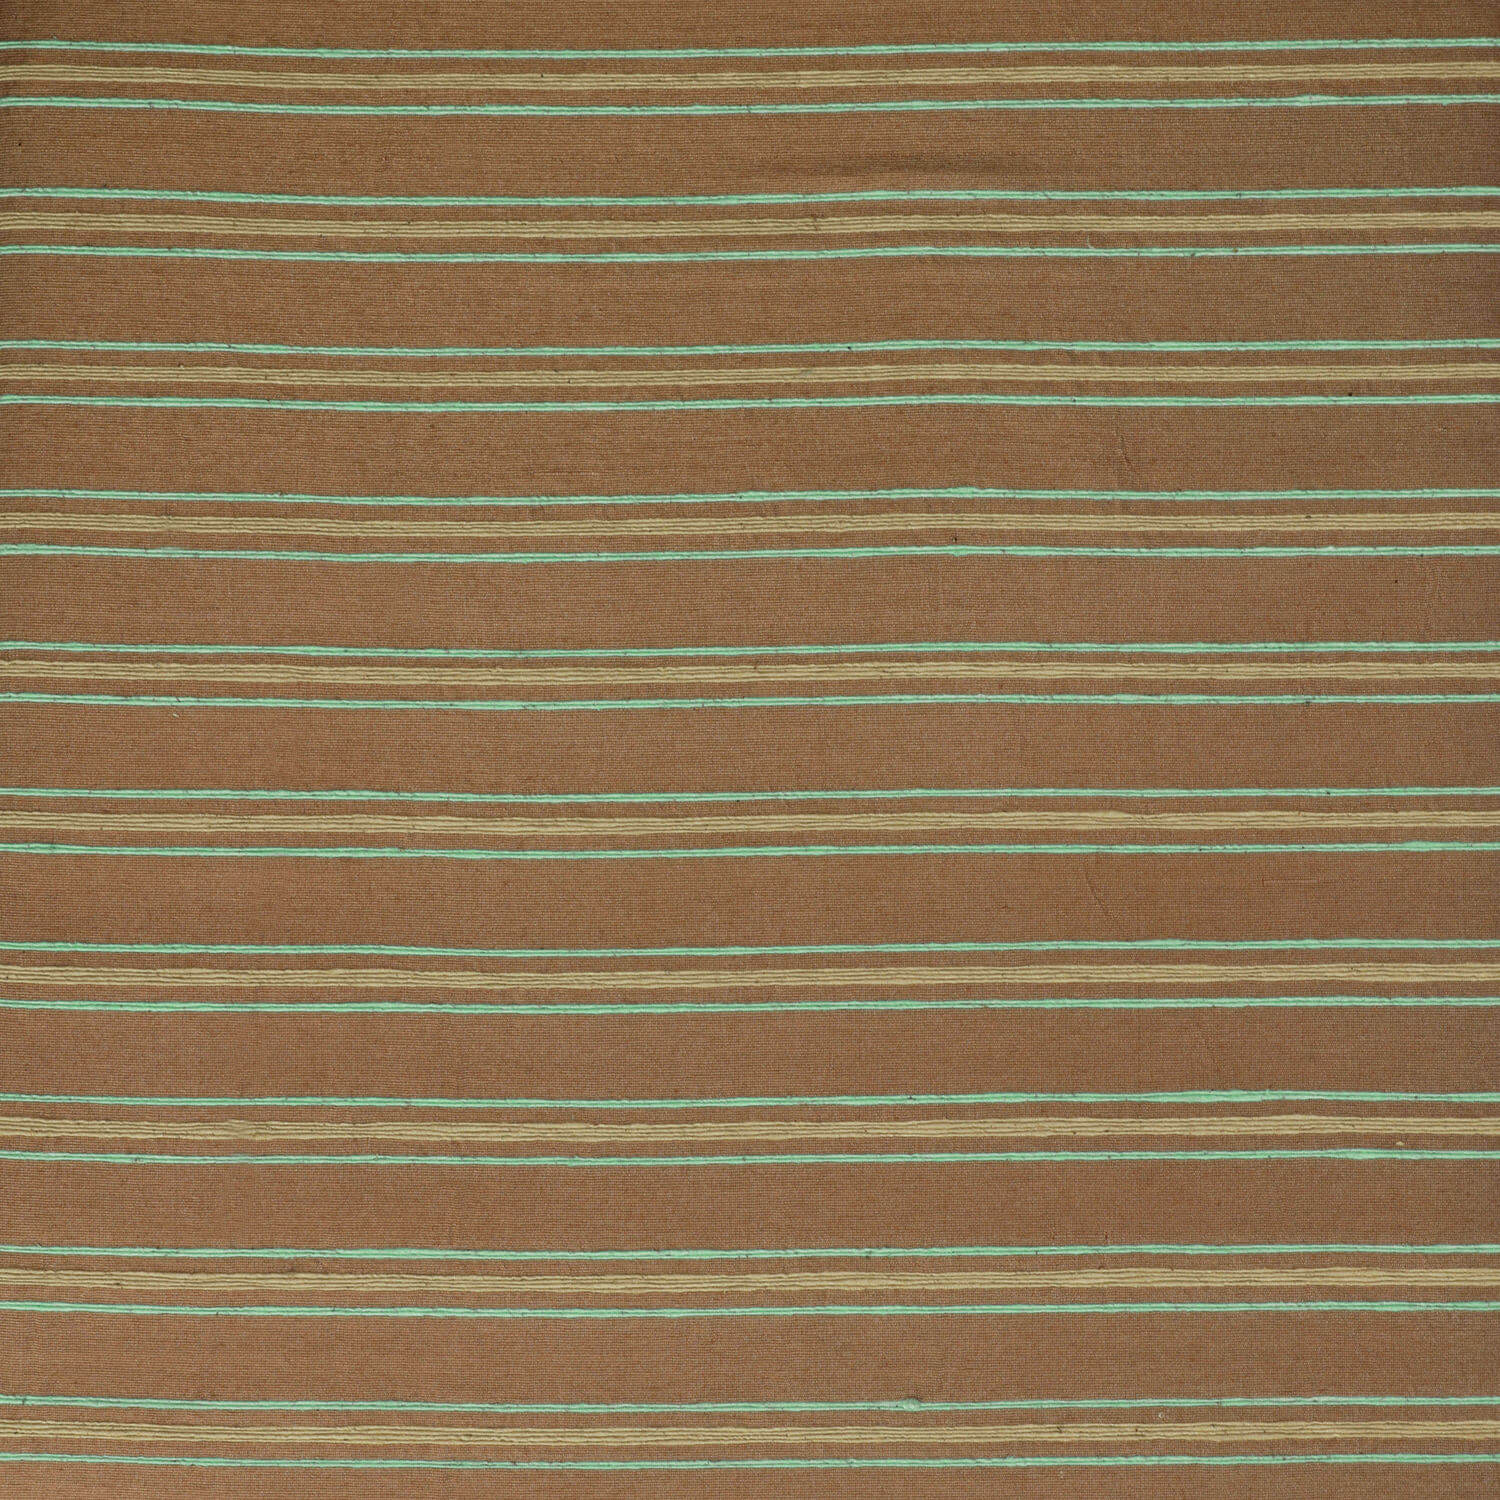 Mocha & Teal Casual Cotton Fabric